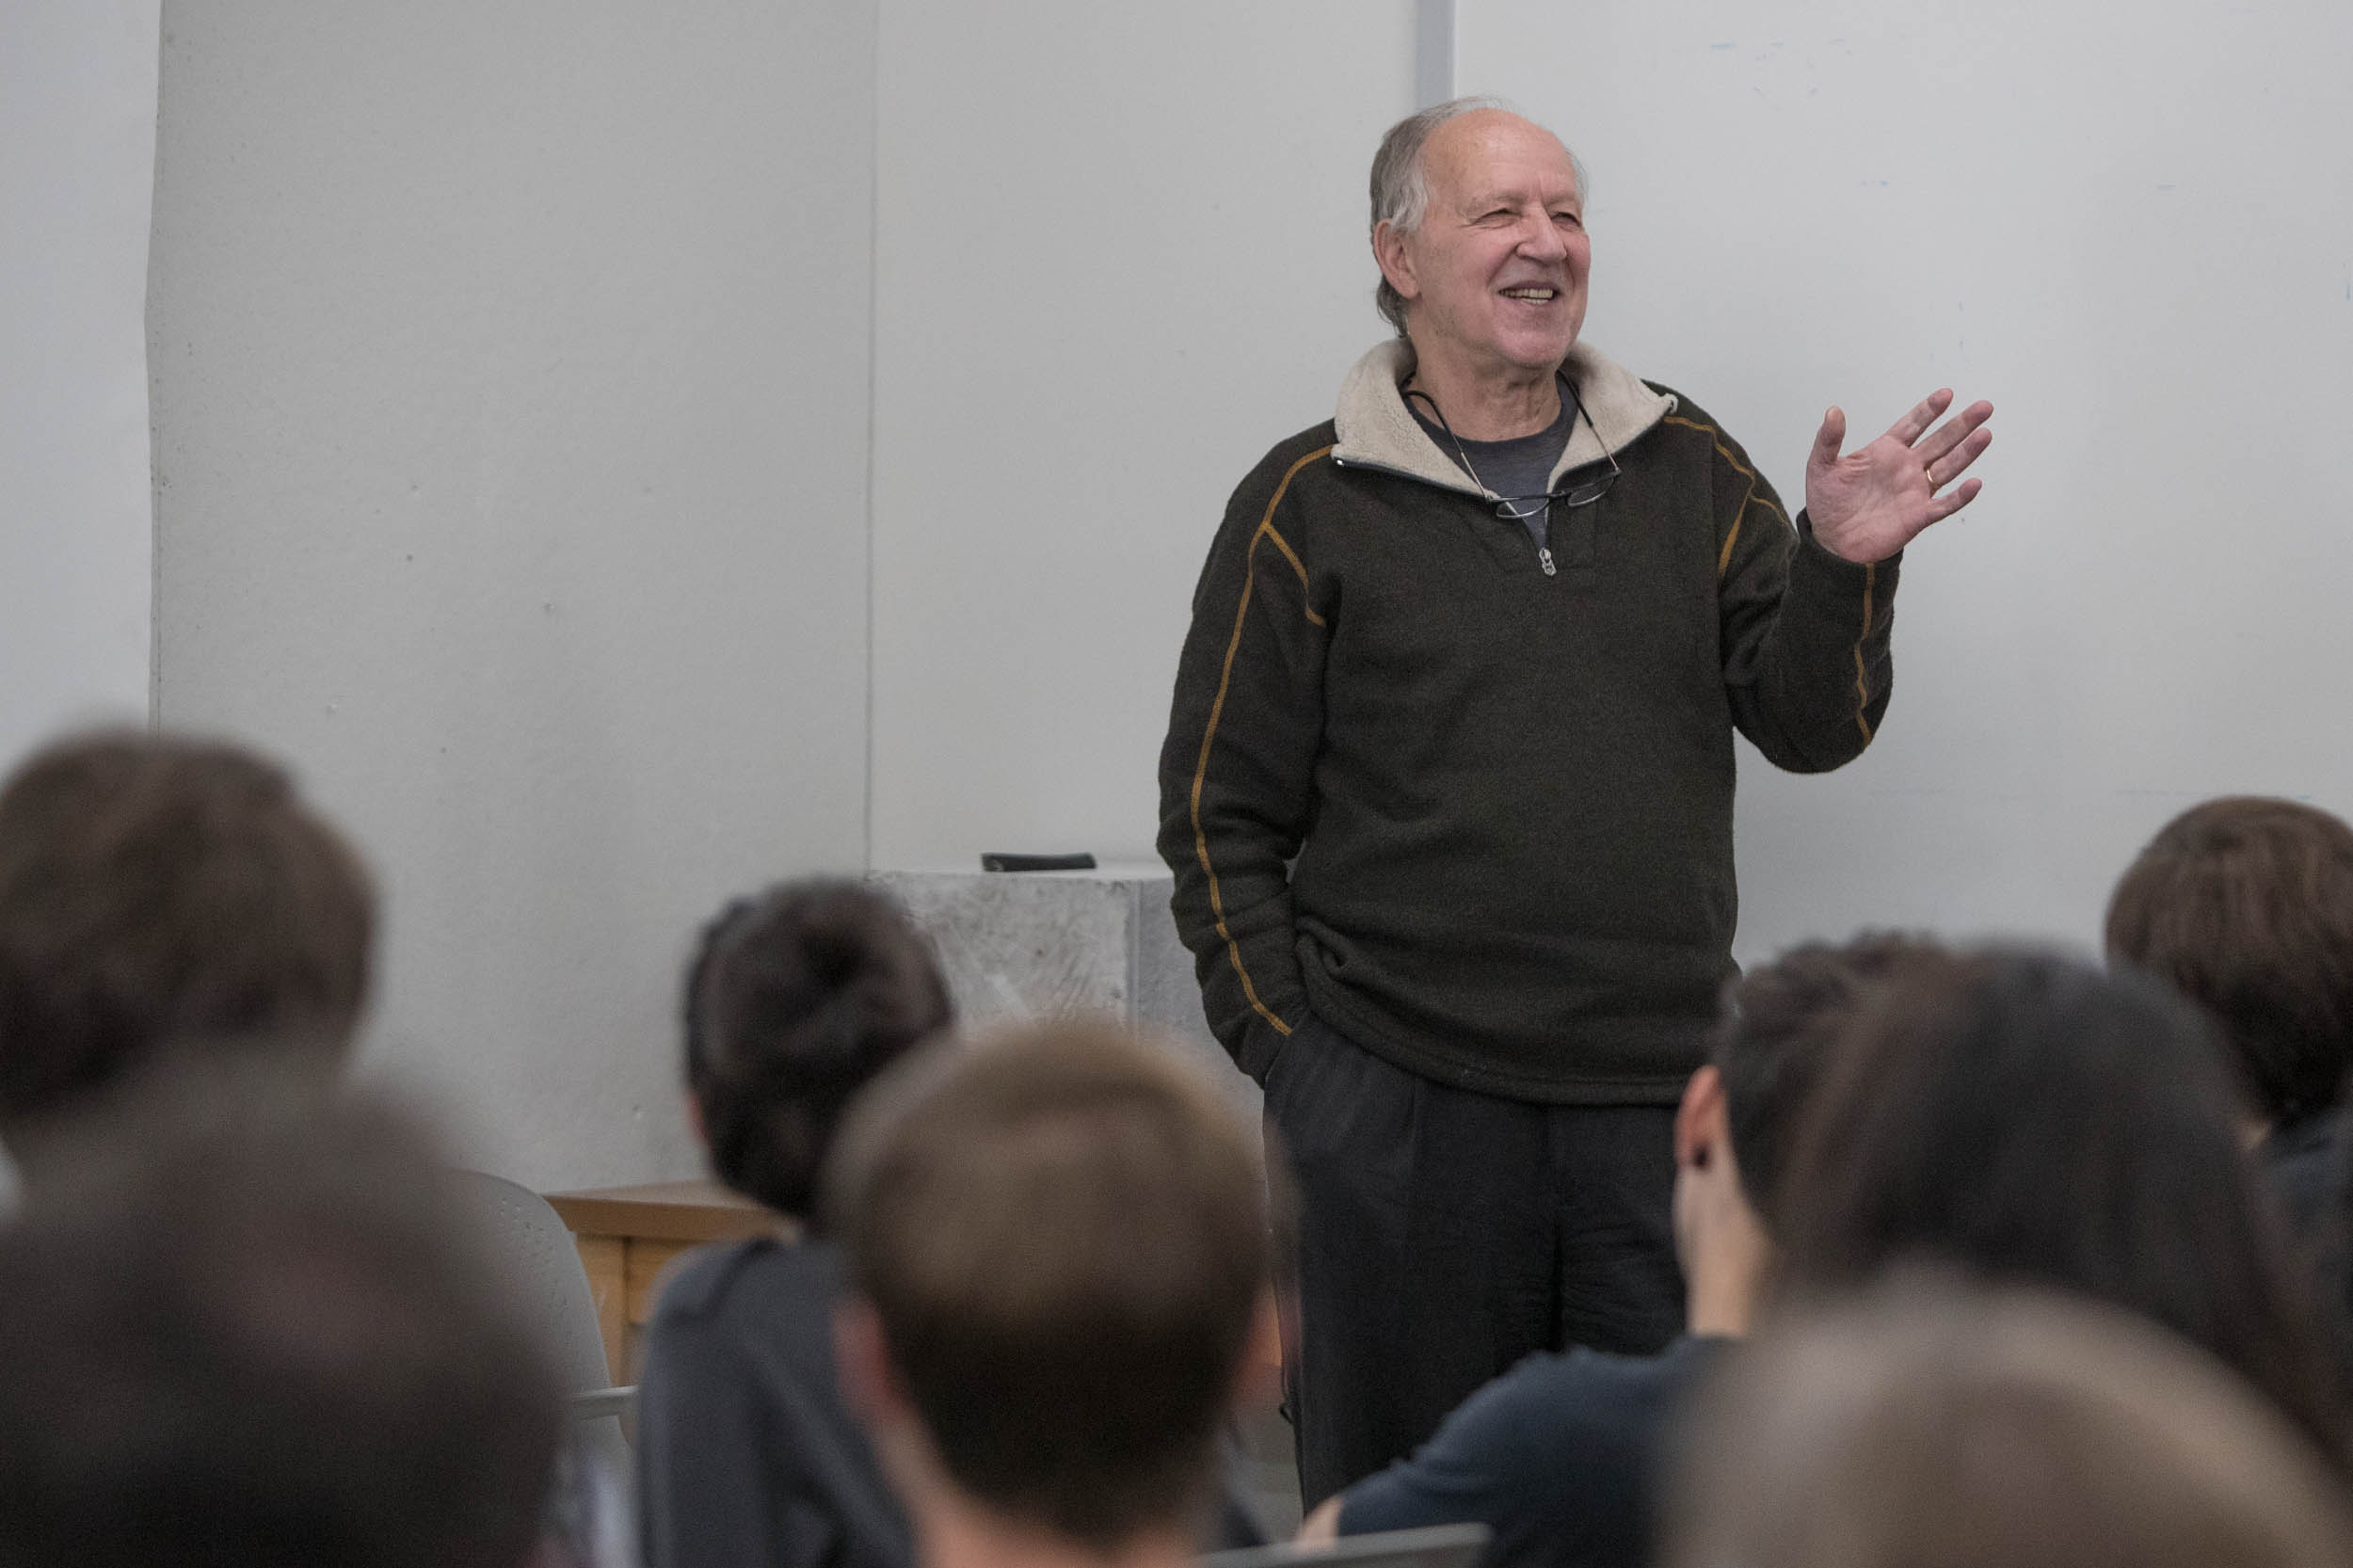 Famed filmmaker Werner Herzog addressed UVA art students and faculty on Friday while in Charlottesville for the Virginia Film Festival. (Sanjay Suchak, University Communications)